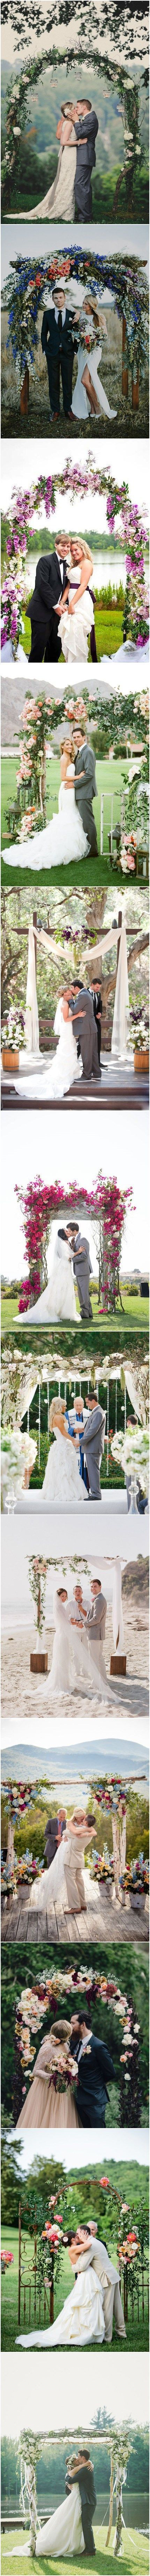 best wedding arches images on pinterest arch for wedding